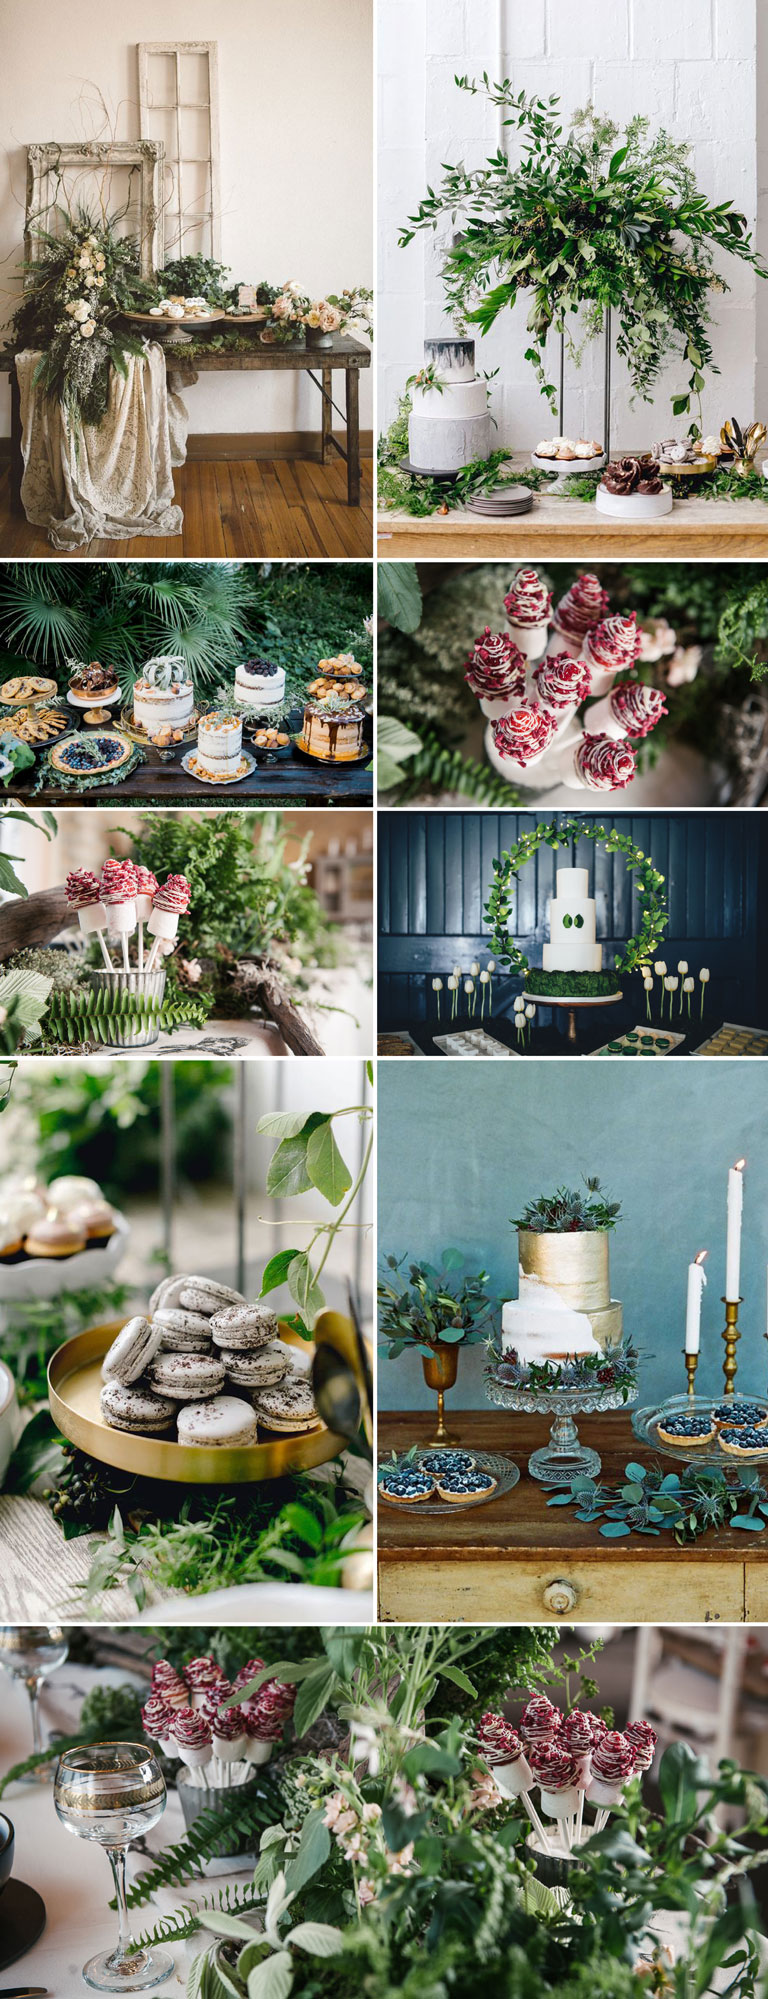 Wedding Dessert Table Styled With Foliage